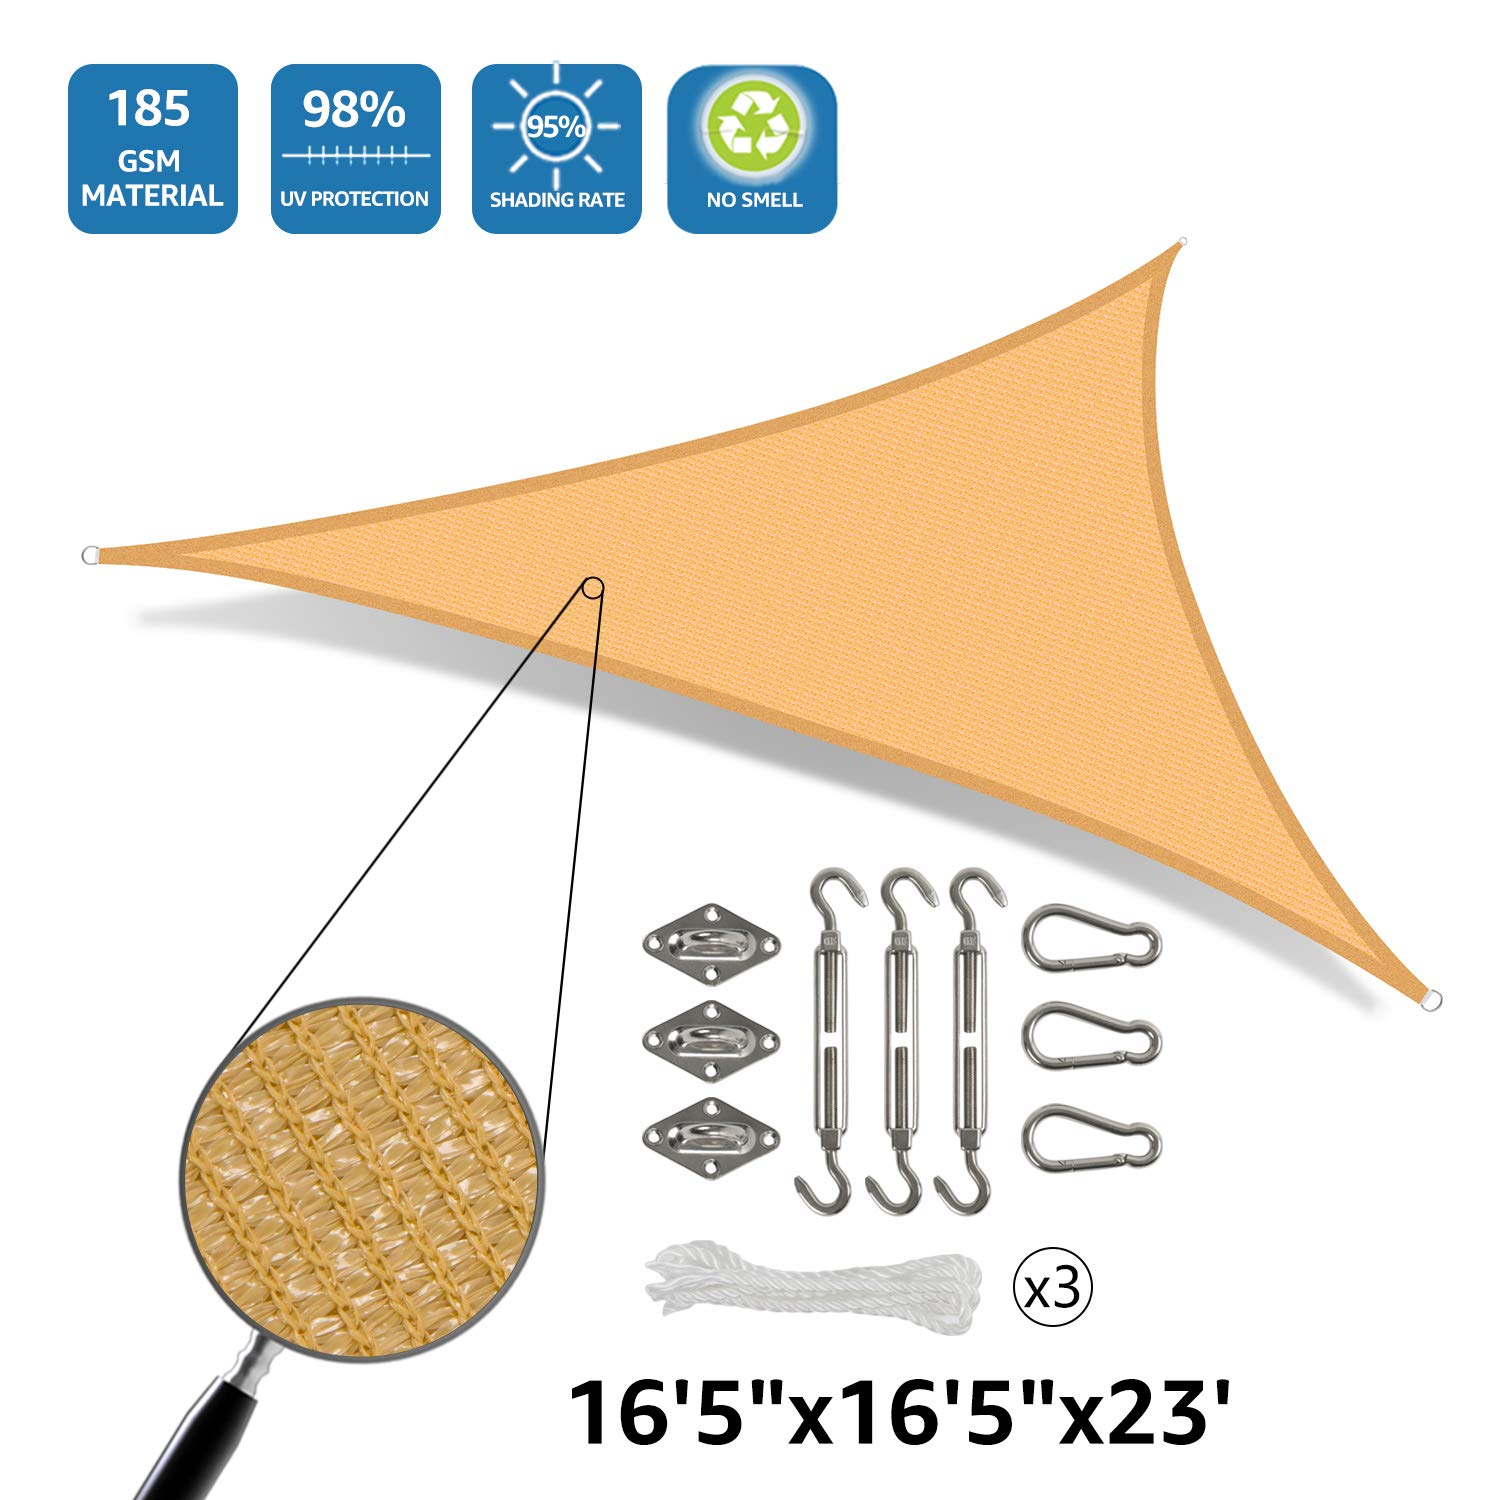 DOEWORKS 16'5''x16'5''x23' Right Triangle Sun Shade Sail with Hardware Kits, Shade for Patio Outdoor Garden, Sand by DOEWORKS